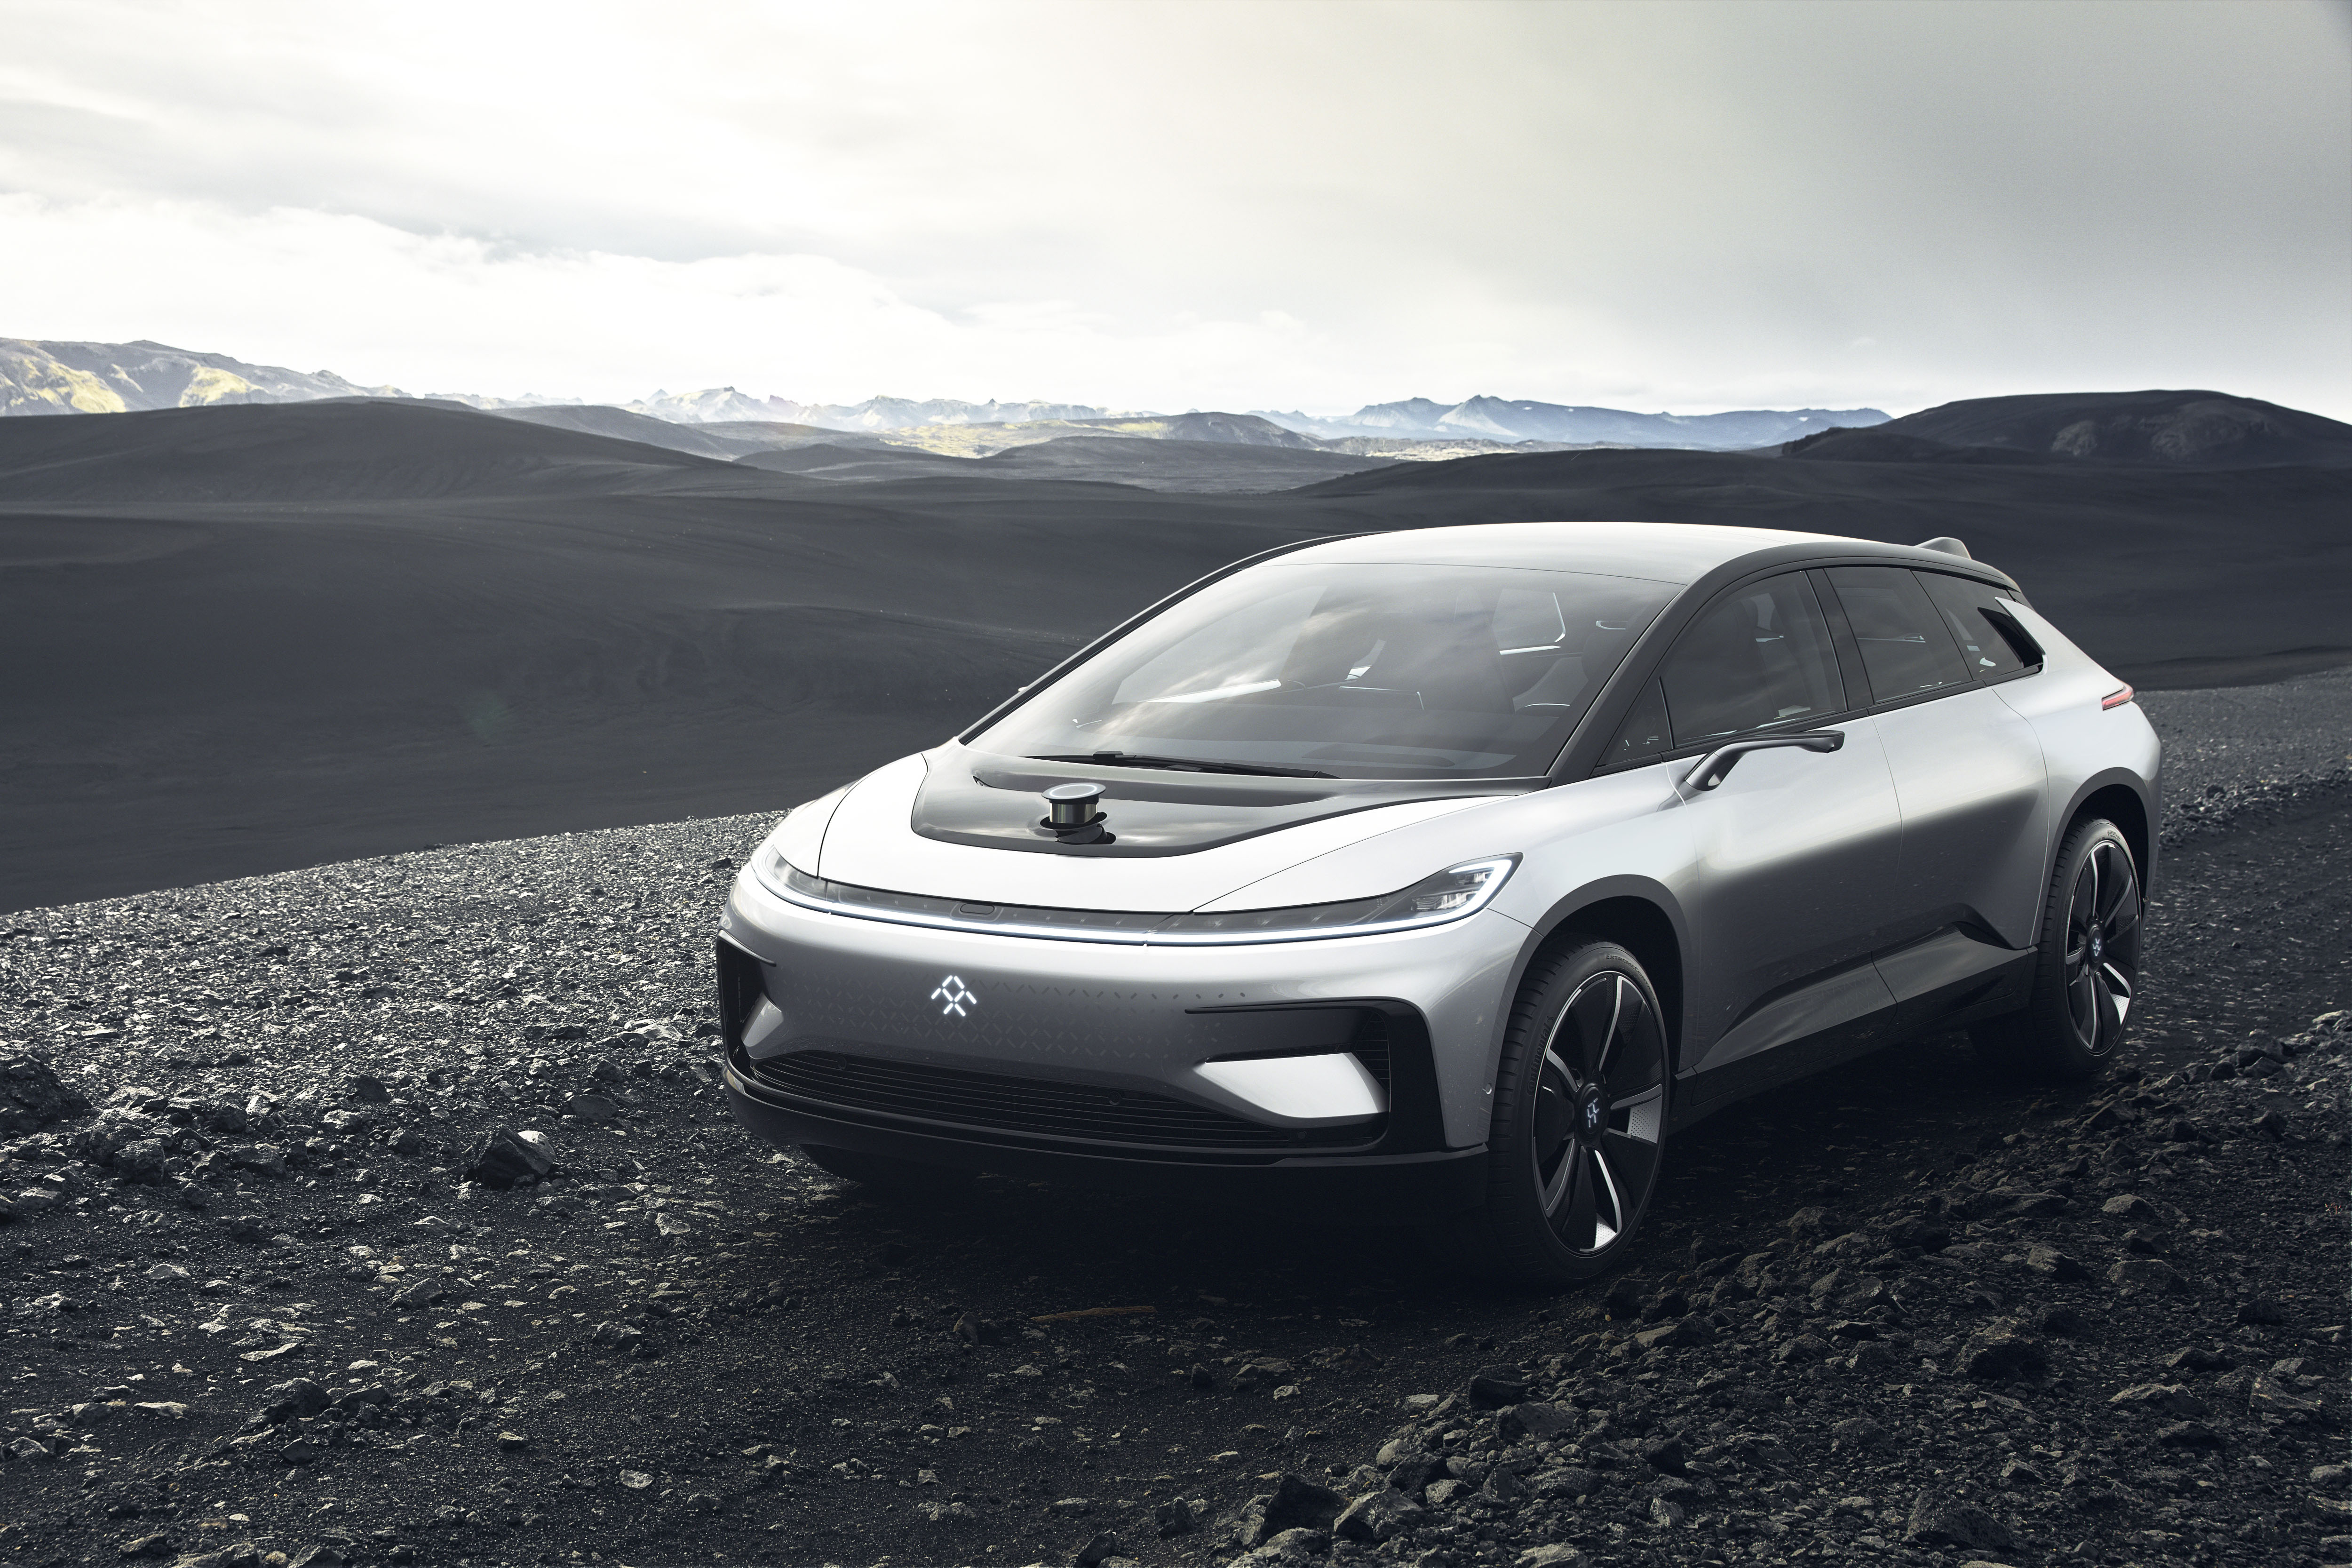 Faraday Future Unveils Latest Electric Vehicle, FF91